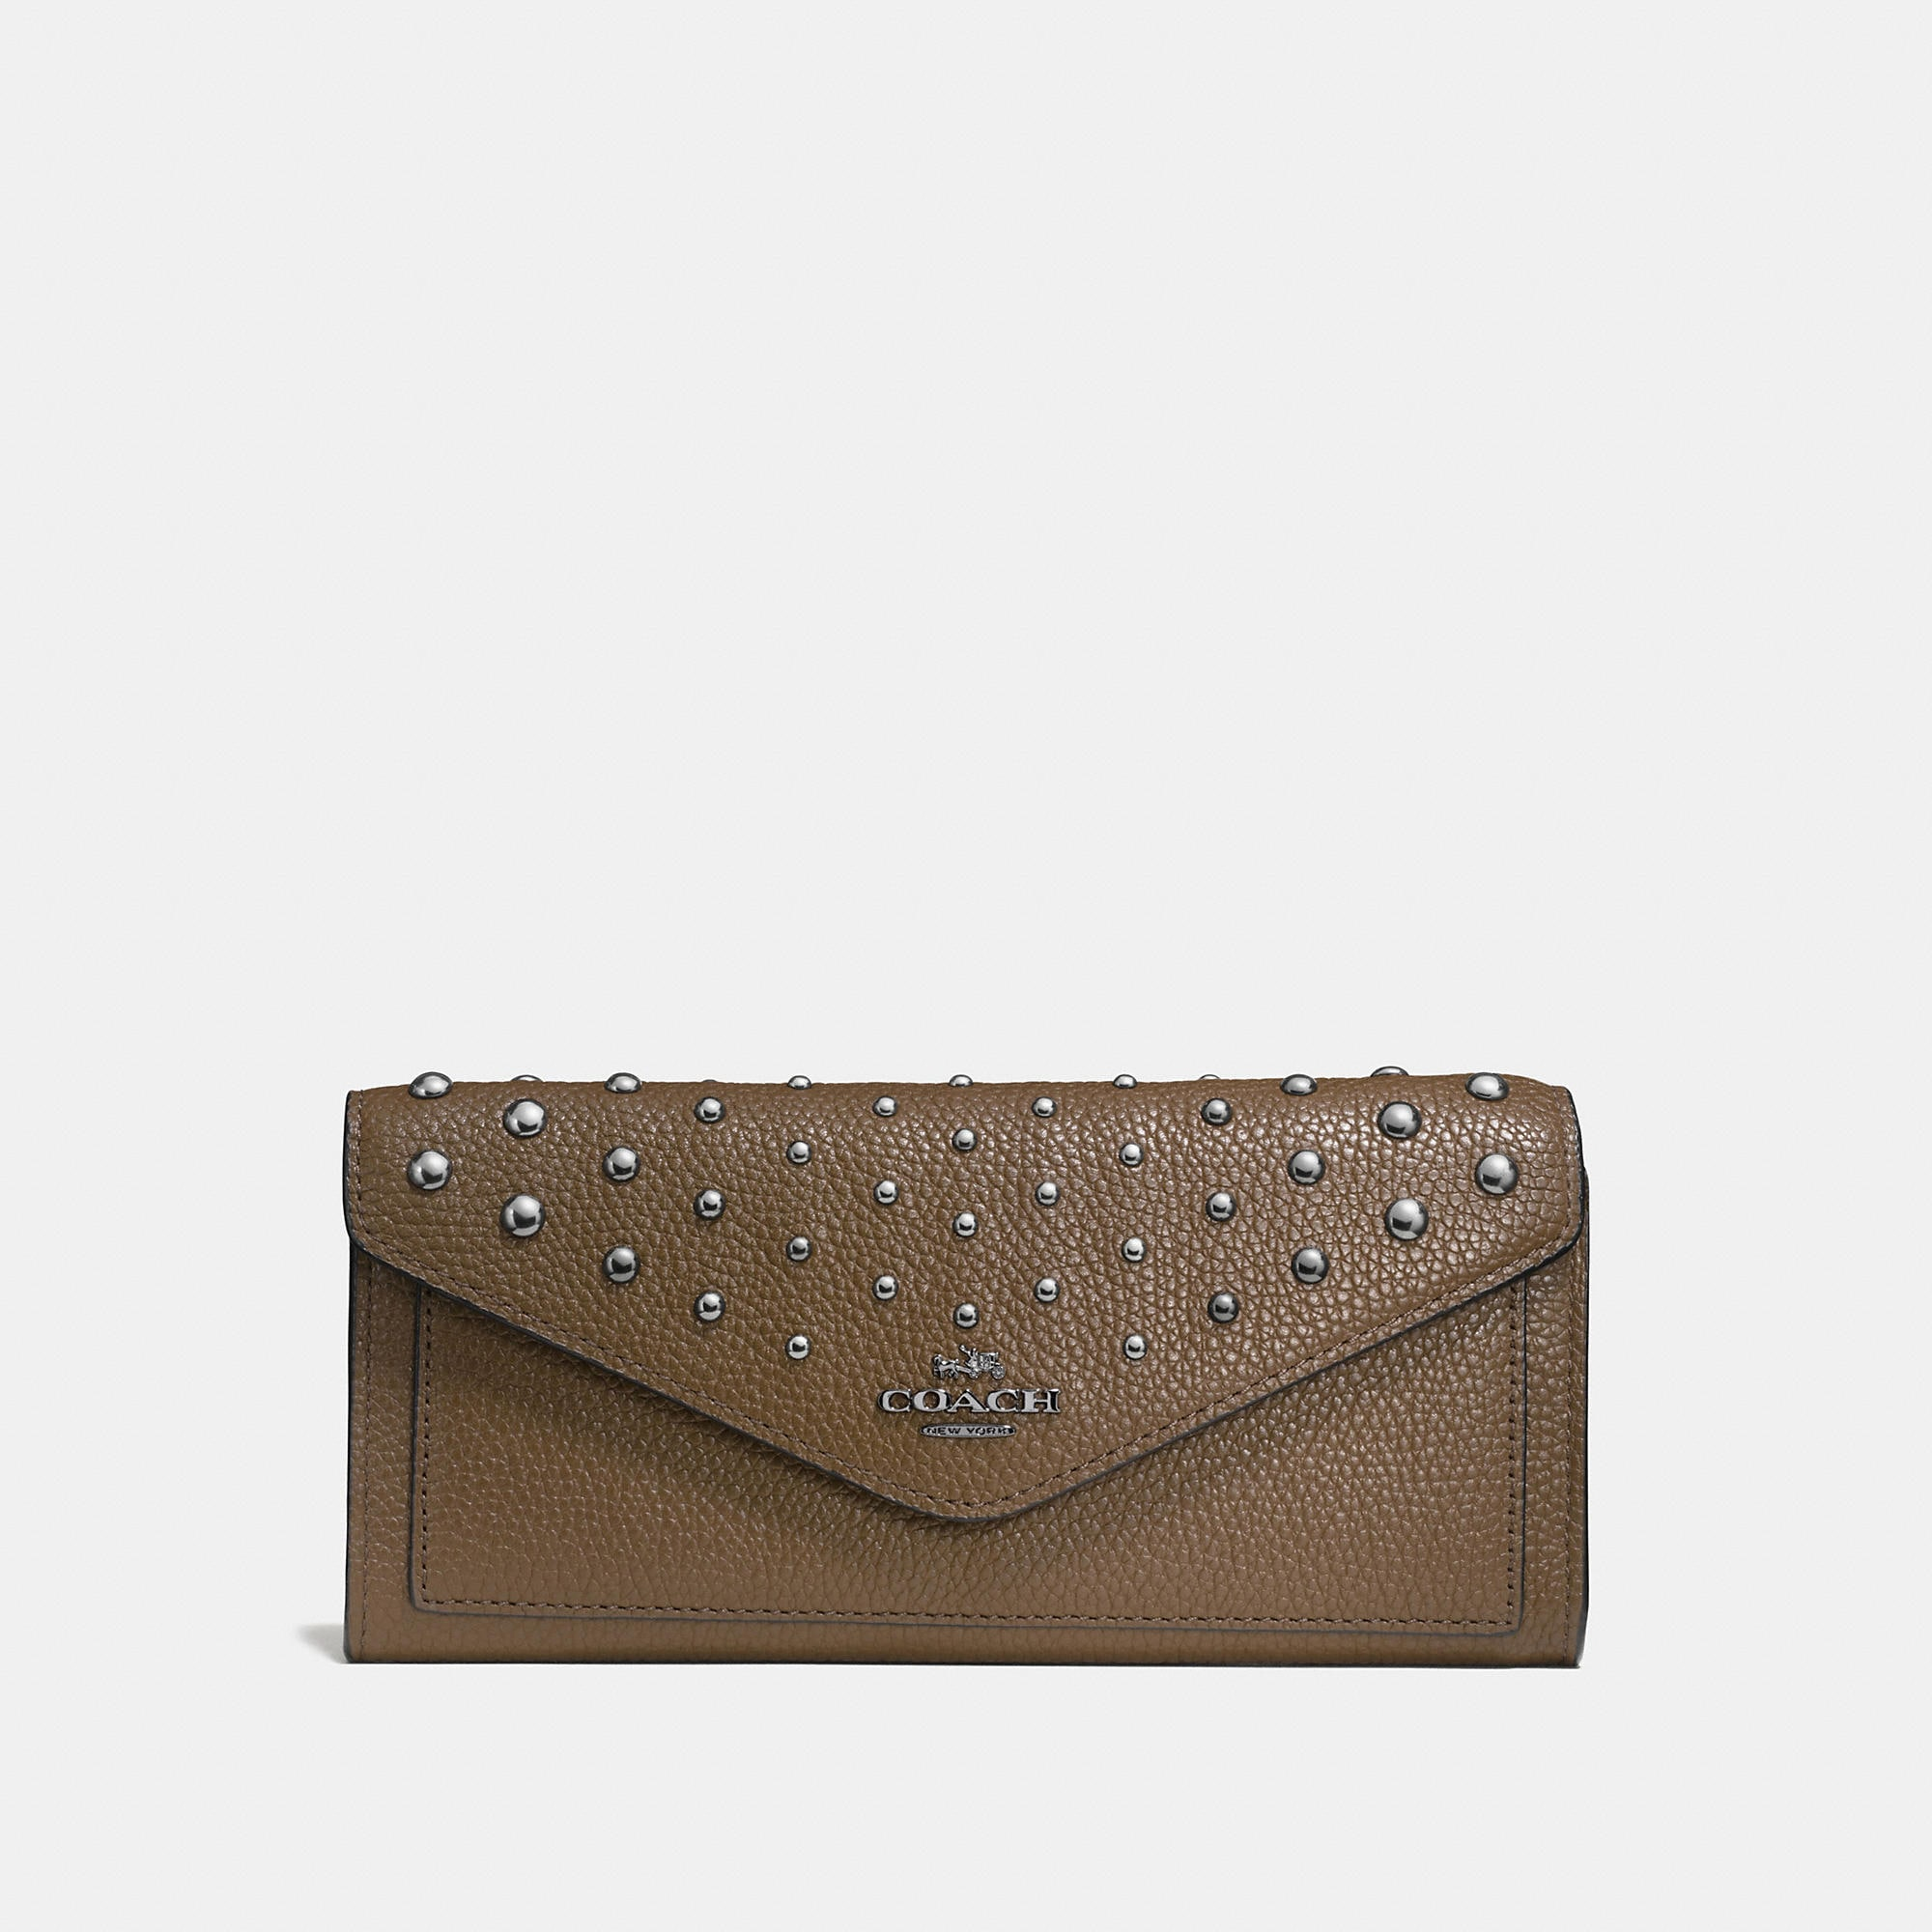 Coach Soft Wallet In Polished Pebble Leather With Ombre Rivets